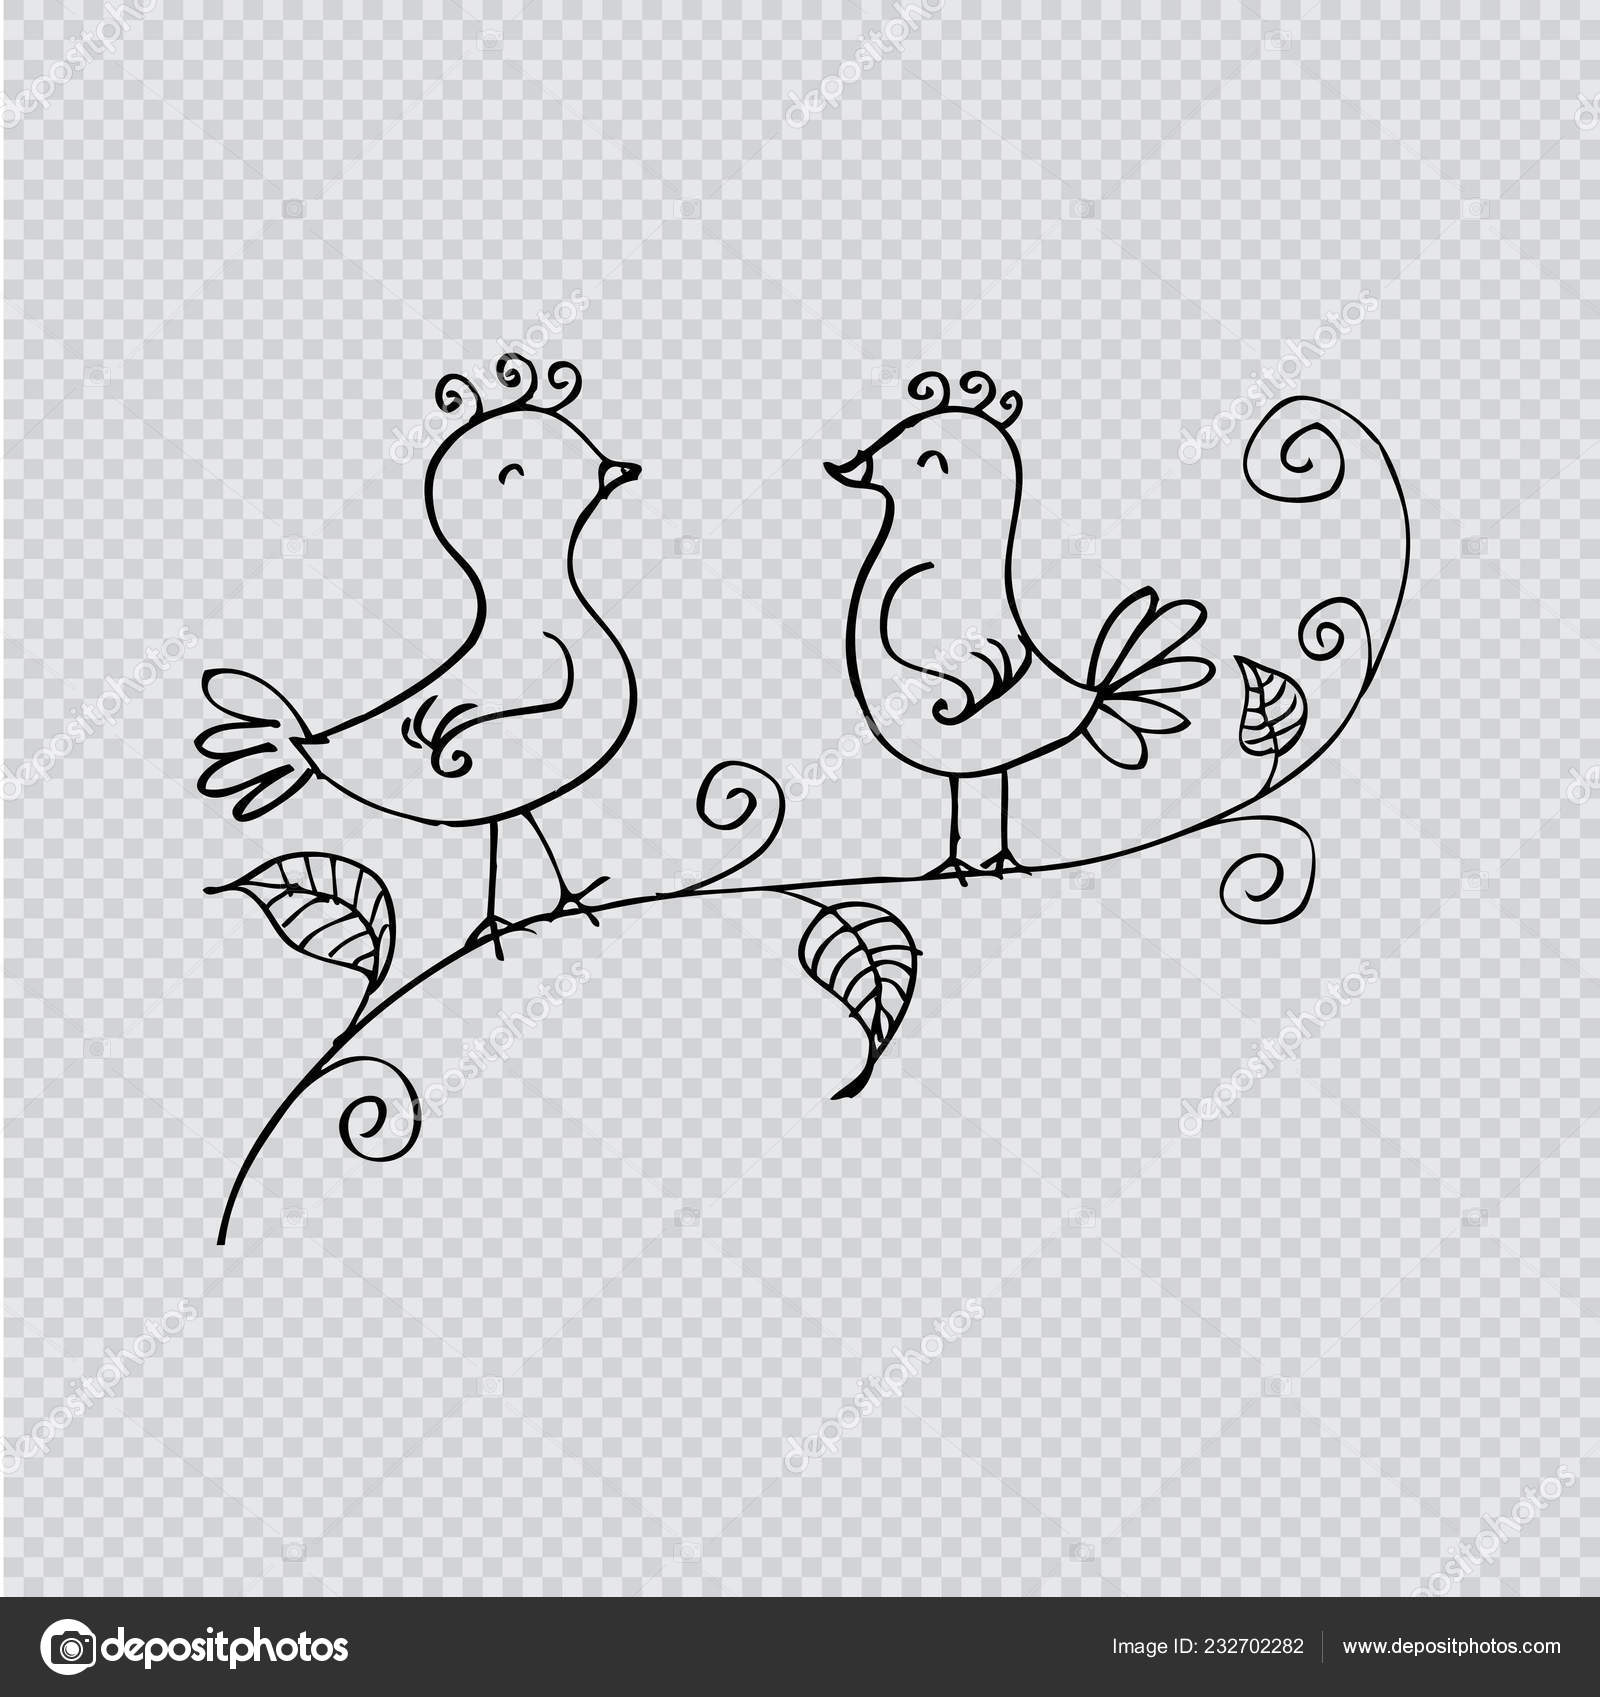 Birds Branch Two Romantic Birds Sitting Tree Hand Drawing Illustration Vector Image By C Handini Vector Stock 232702282